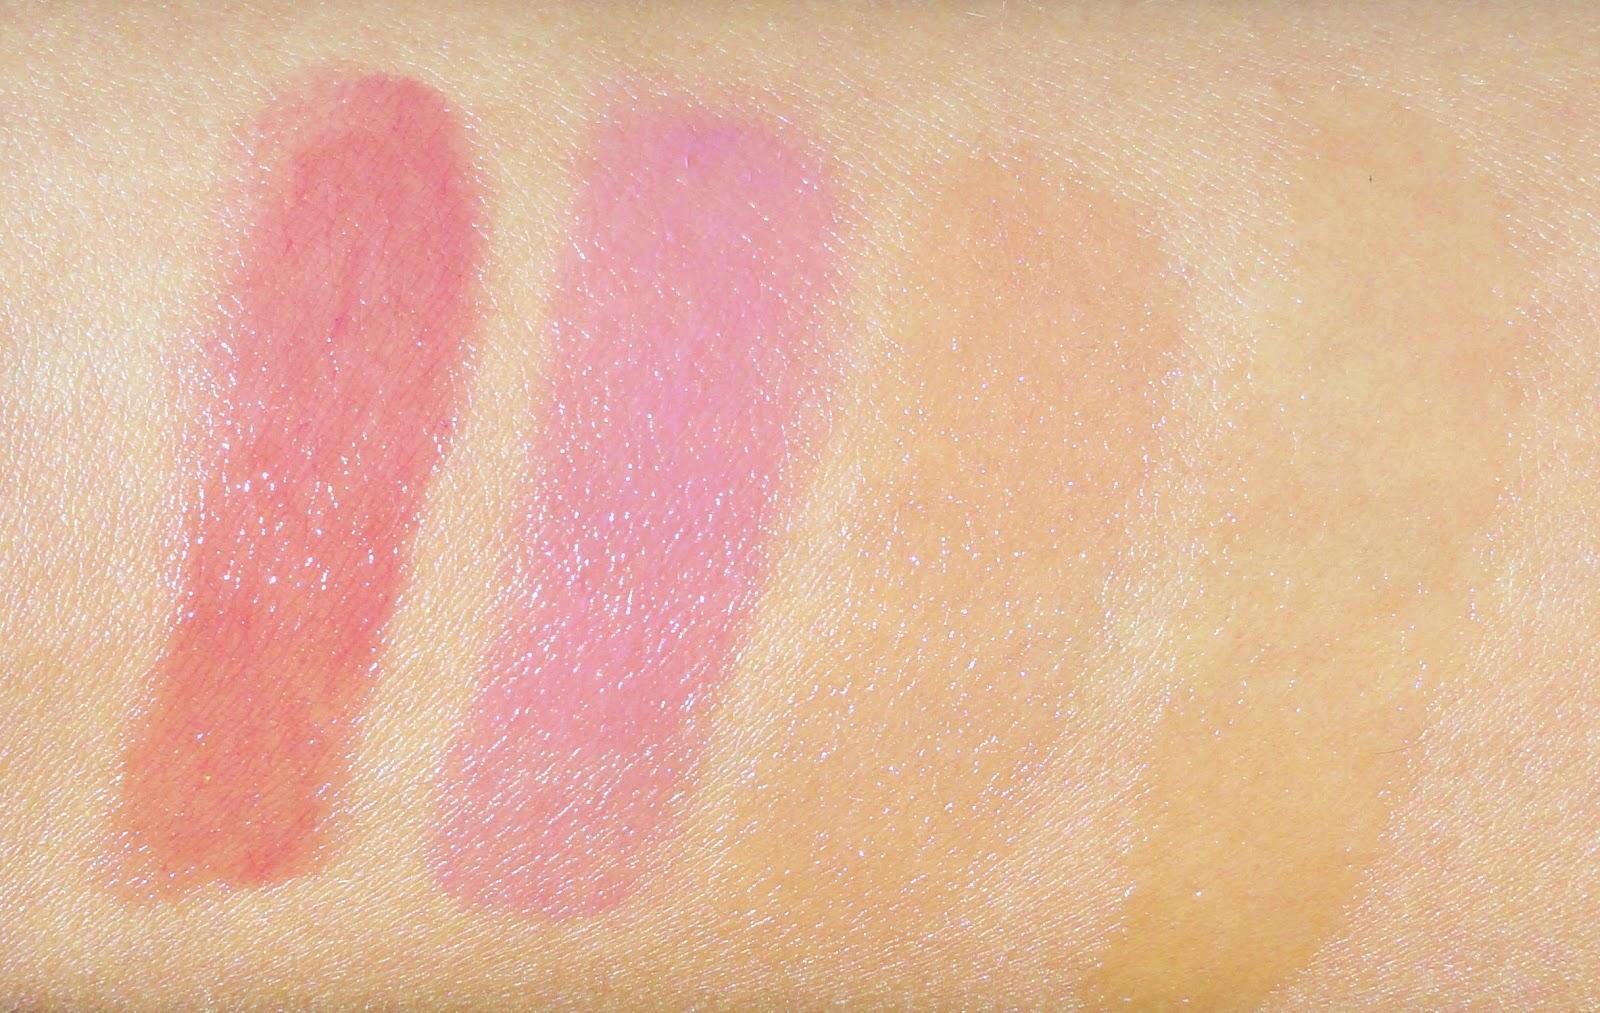 Maybelline Baby Lips Review & Swatches   neonrouge37